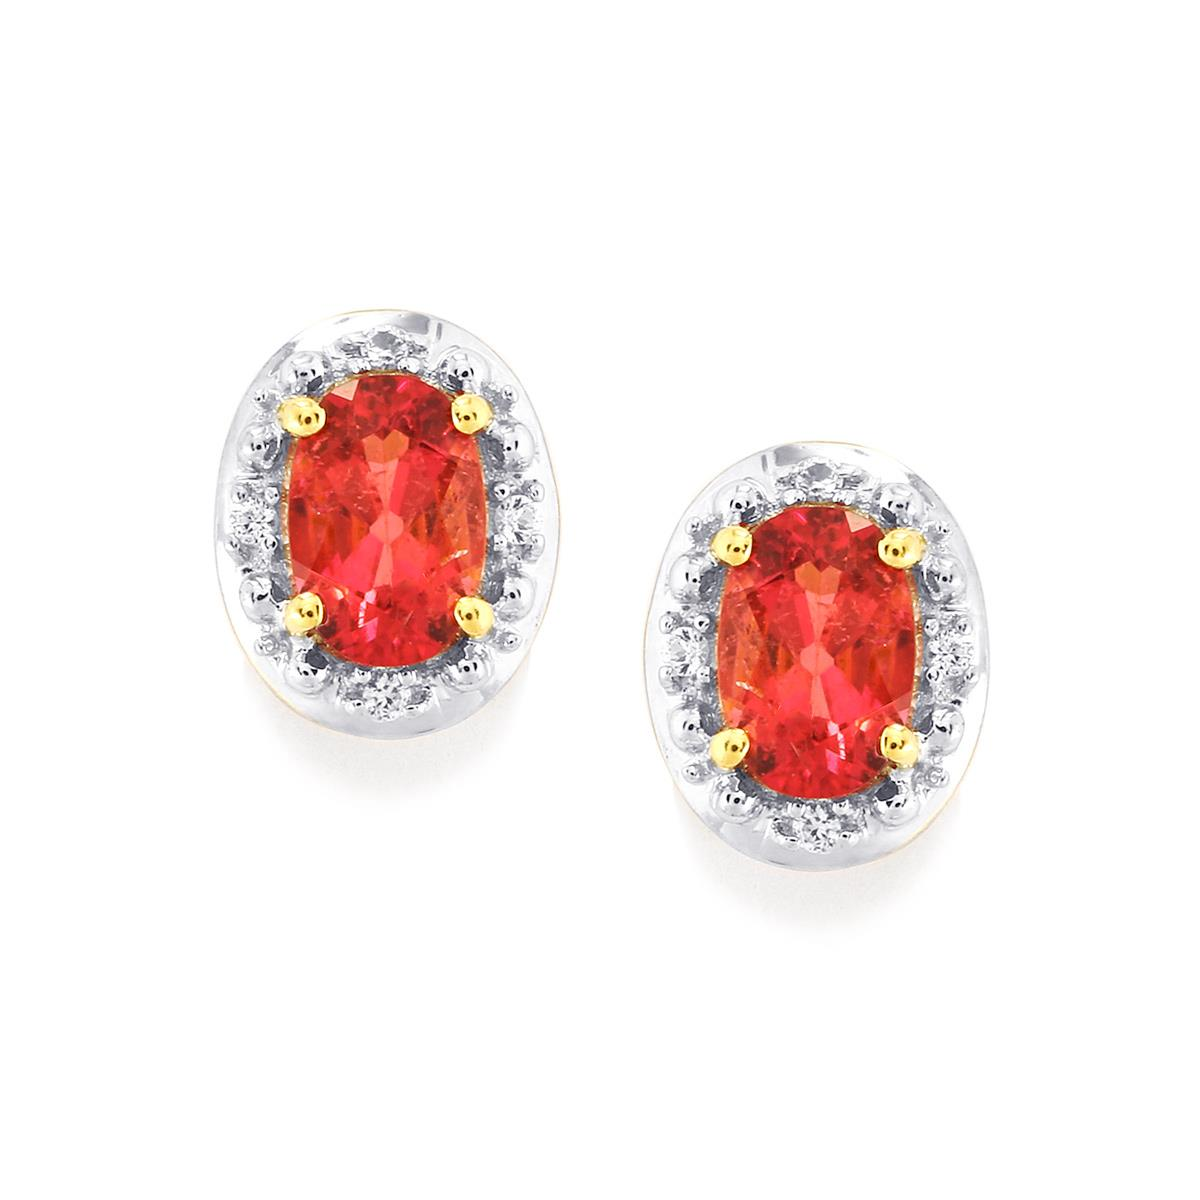 Cruzeiro Rubellite Earrings with White Sapphire in 9K Gold 0.94cts